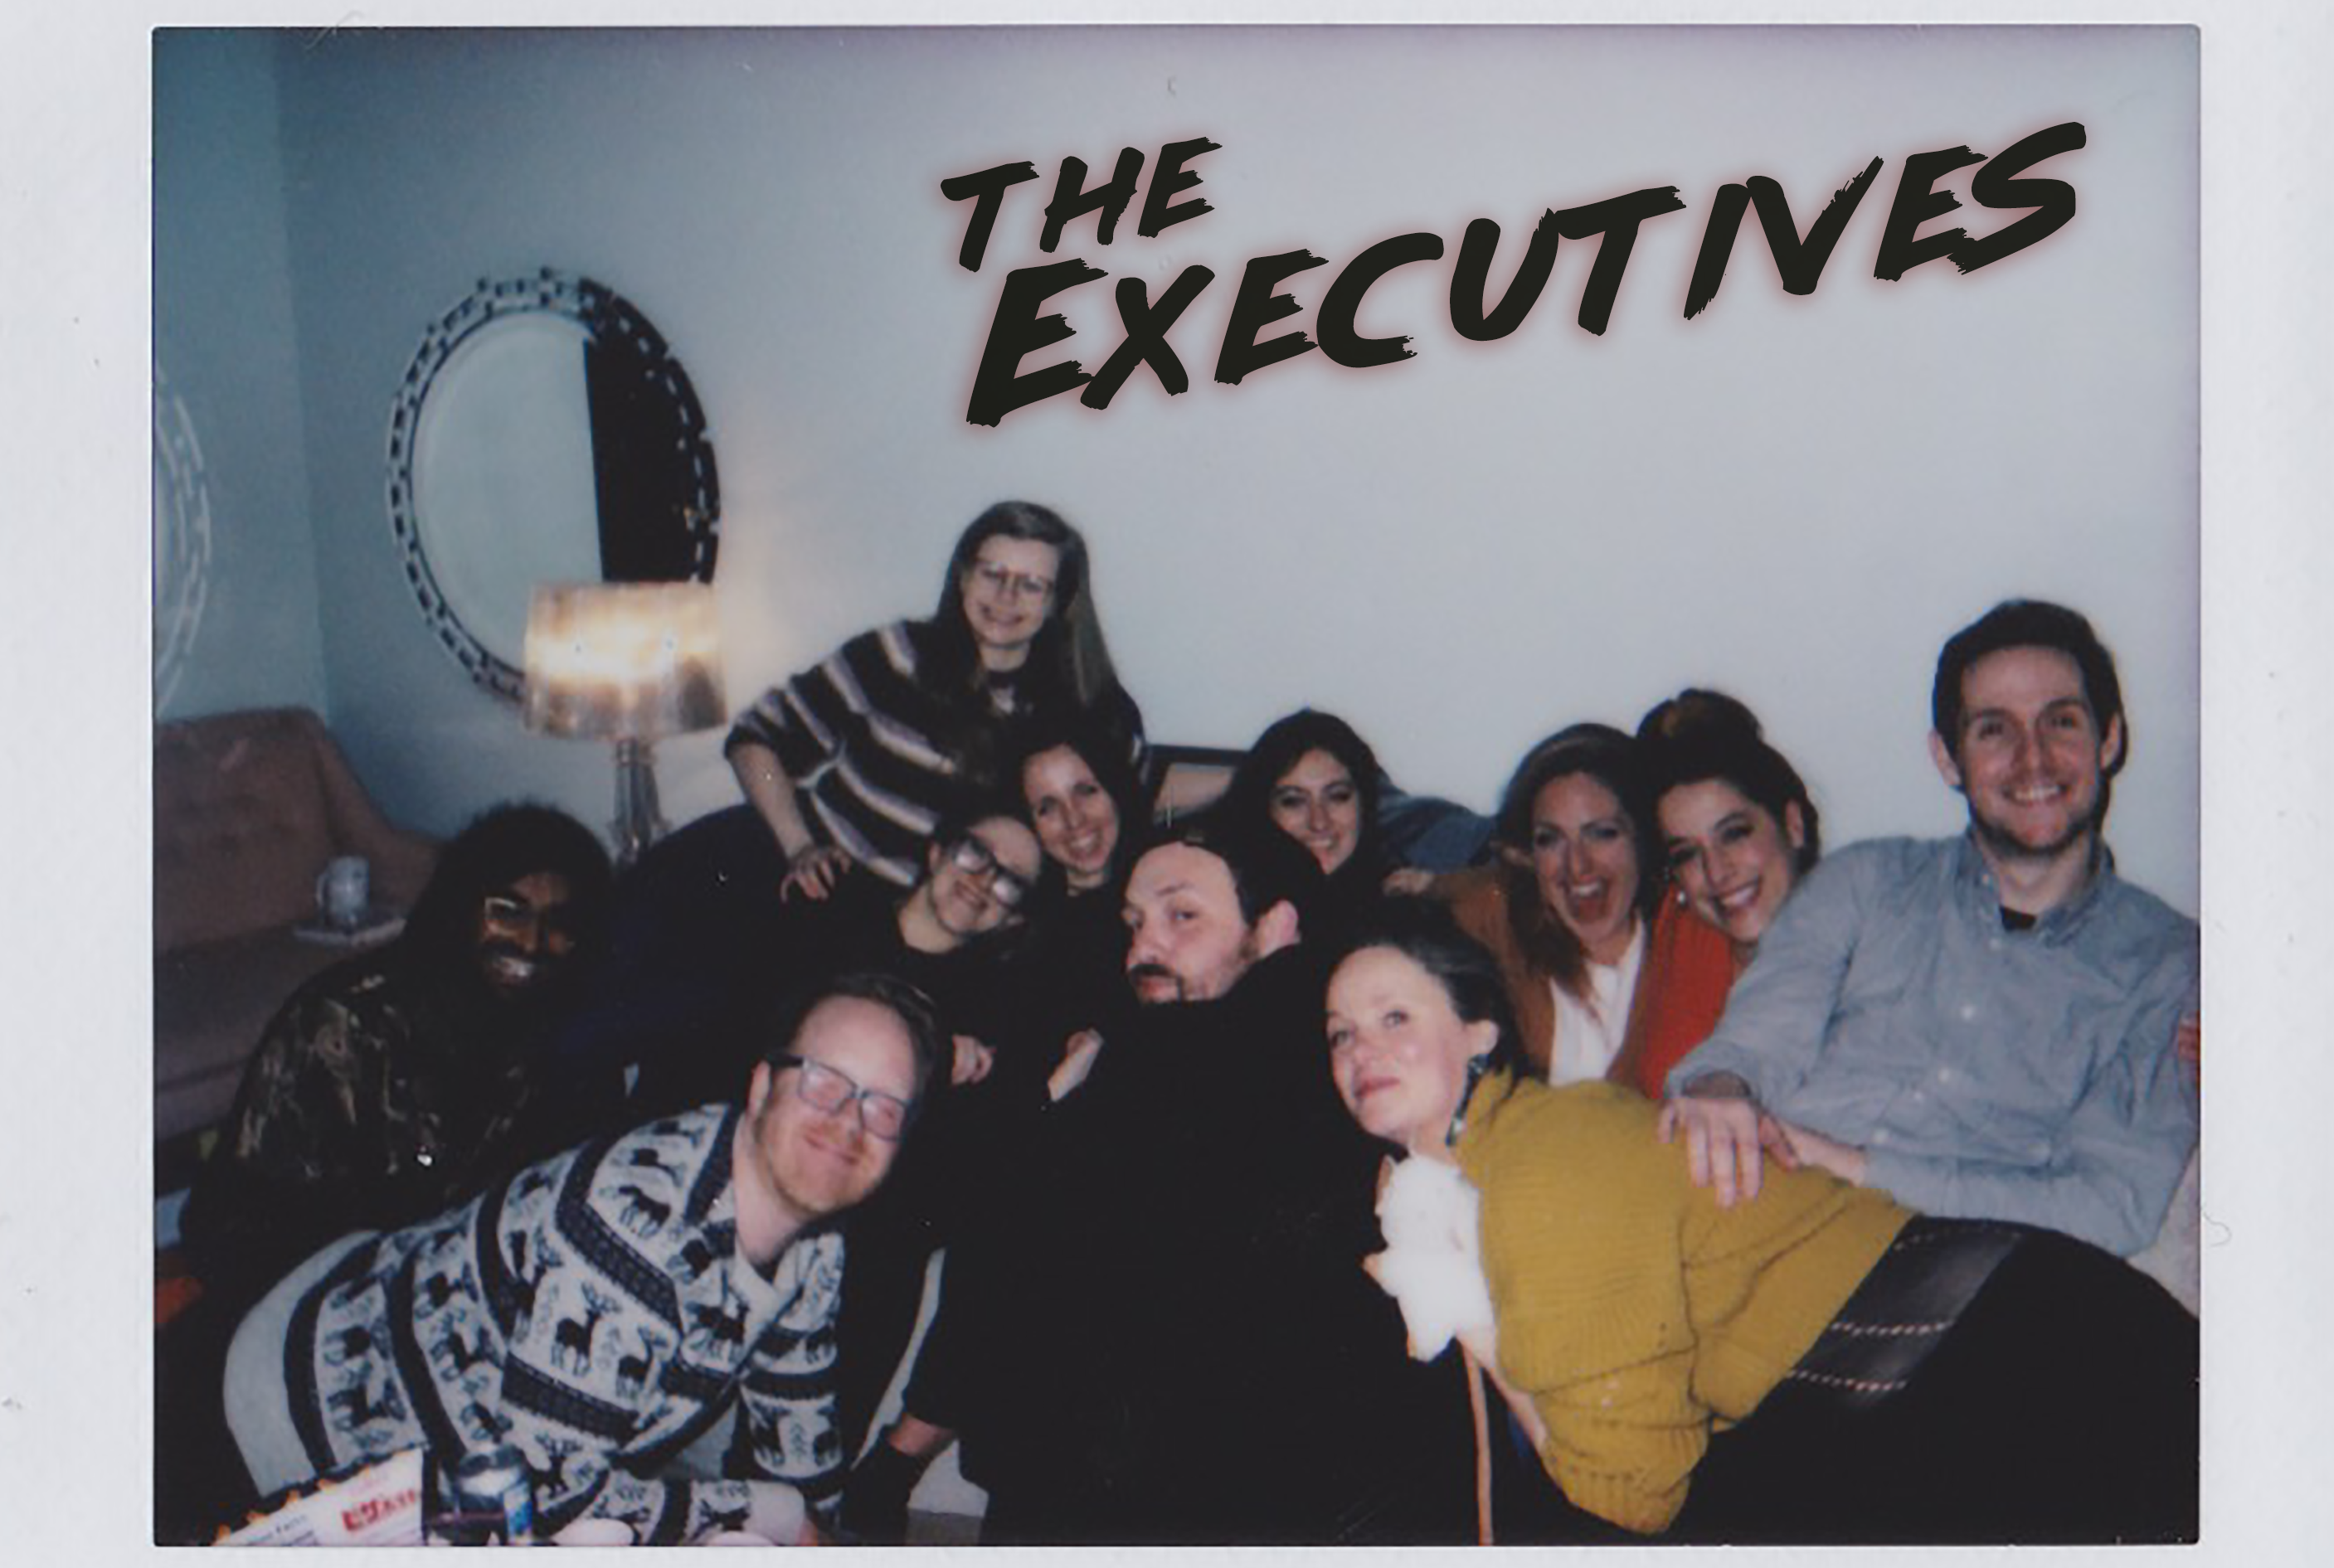 The Executives